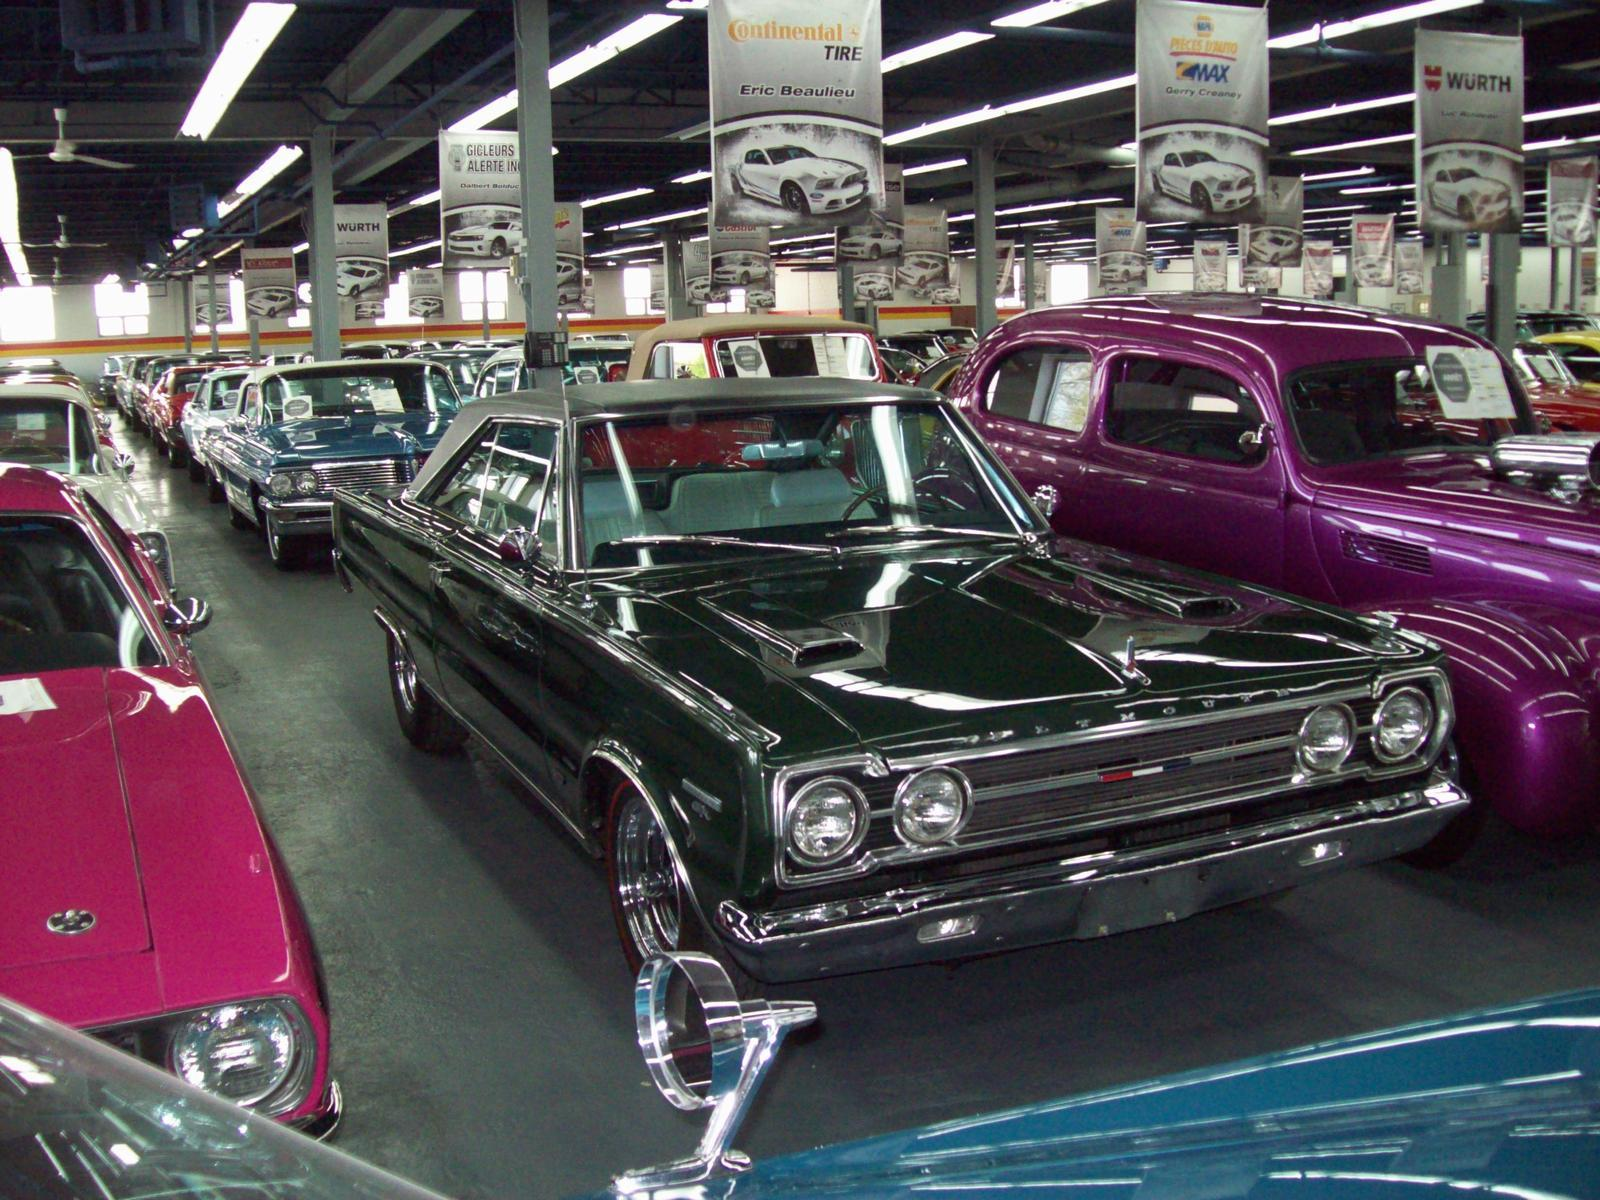 Used 1967 Plymouth Belvedere Gtx Hemi For Sale In Saint Lonard 1960 John Scotti Classic Cars H1r 2y7 2070796